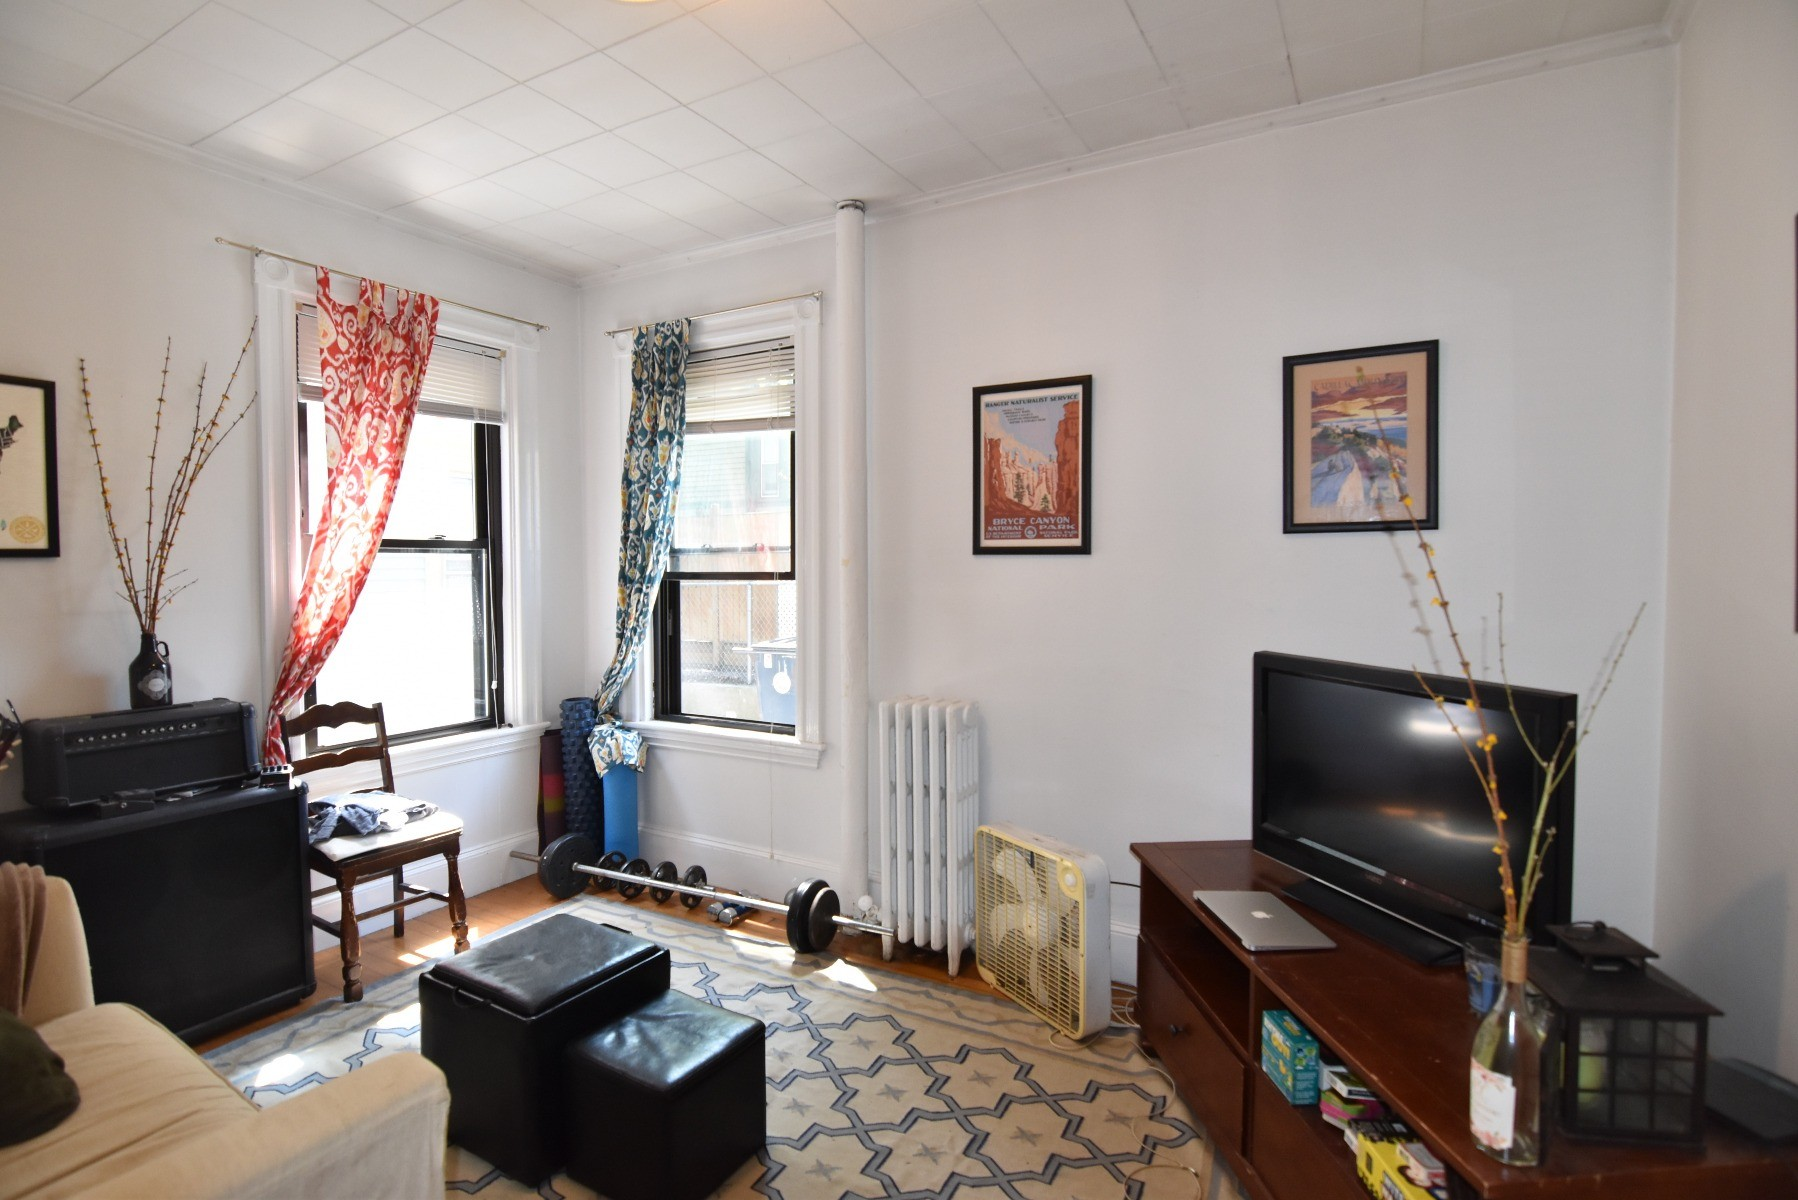 1 Bed, 1 Bath apartment in Somerville, Prospect Hill for $1,950